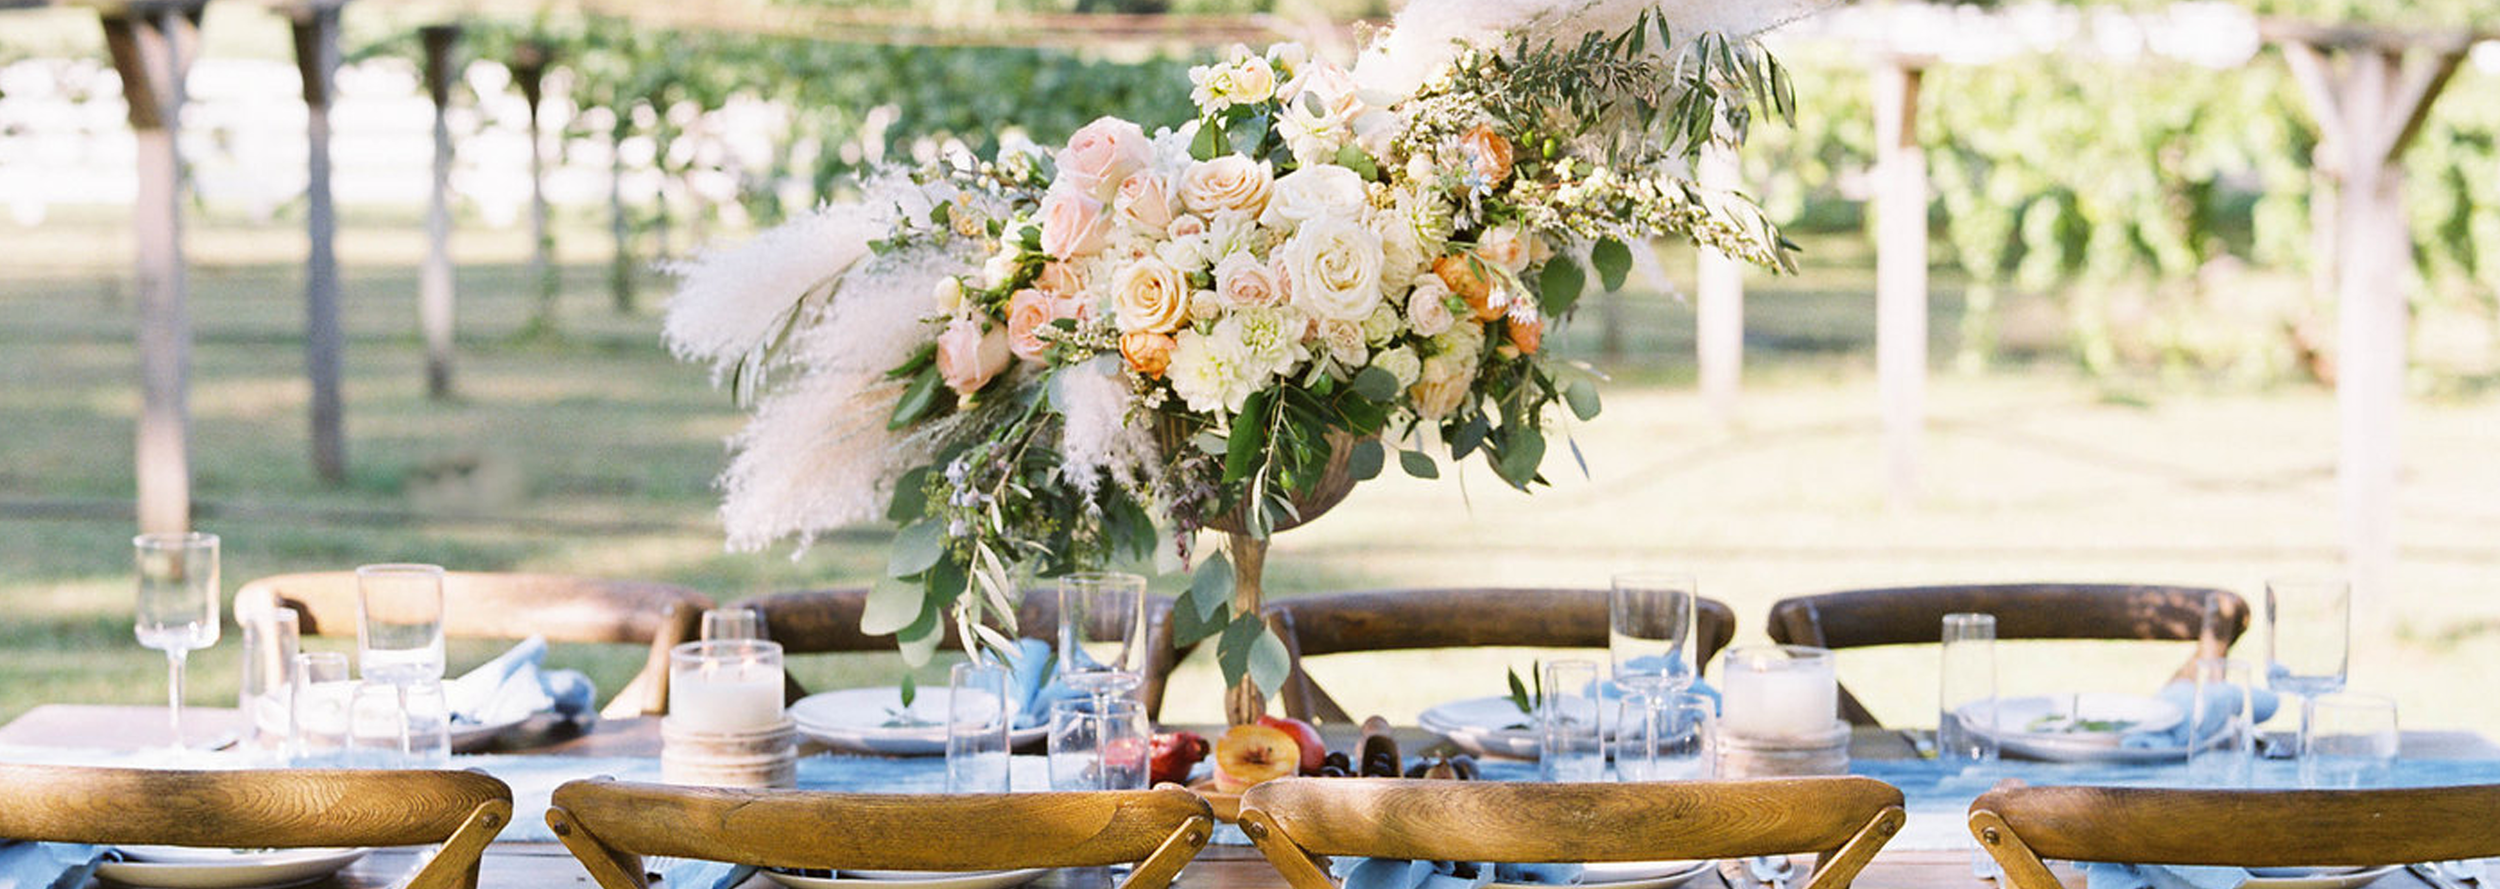 Whitewood Events Stylized Shoot-Details Portraits Tablescape home.png